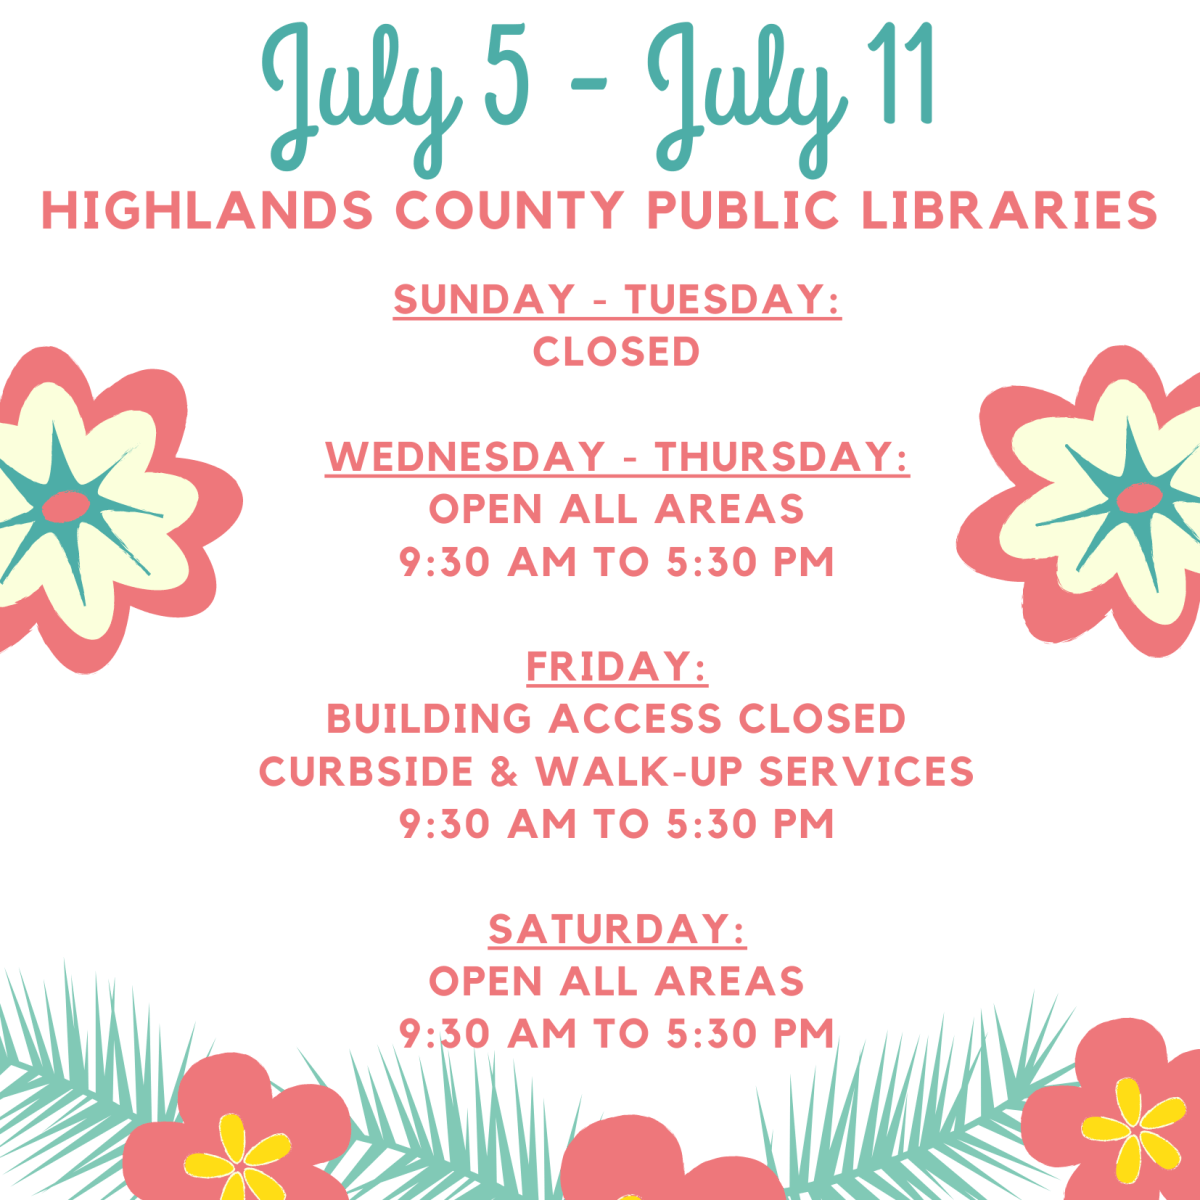 Highlands County Public Libraries Schedule: Sunday - Tuesday: Closed Wednesday & Thursday: Open all areas, 9:30 AM to 5:30 PM Friday: Building access - closed, Curbside & Walk Up Services 9:30 AM to 5:30 PM Saturday: Open all areas, 9:30 AM to 5:30 PM